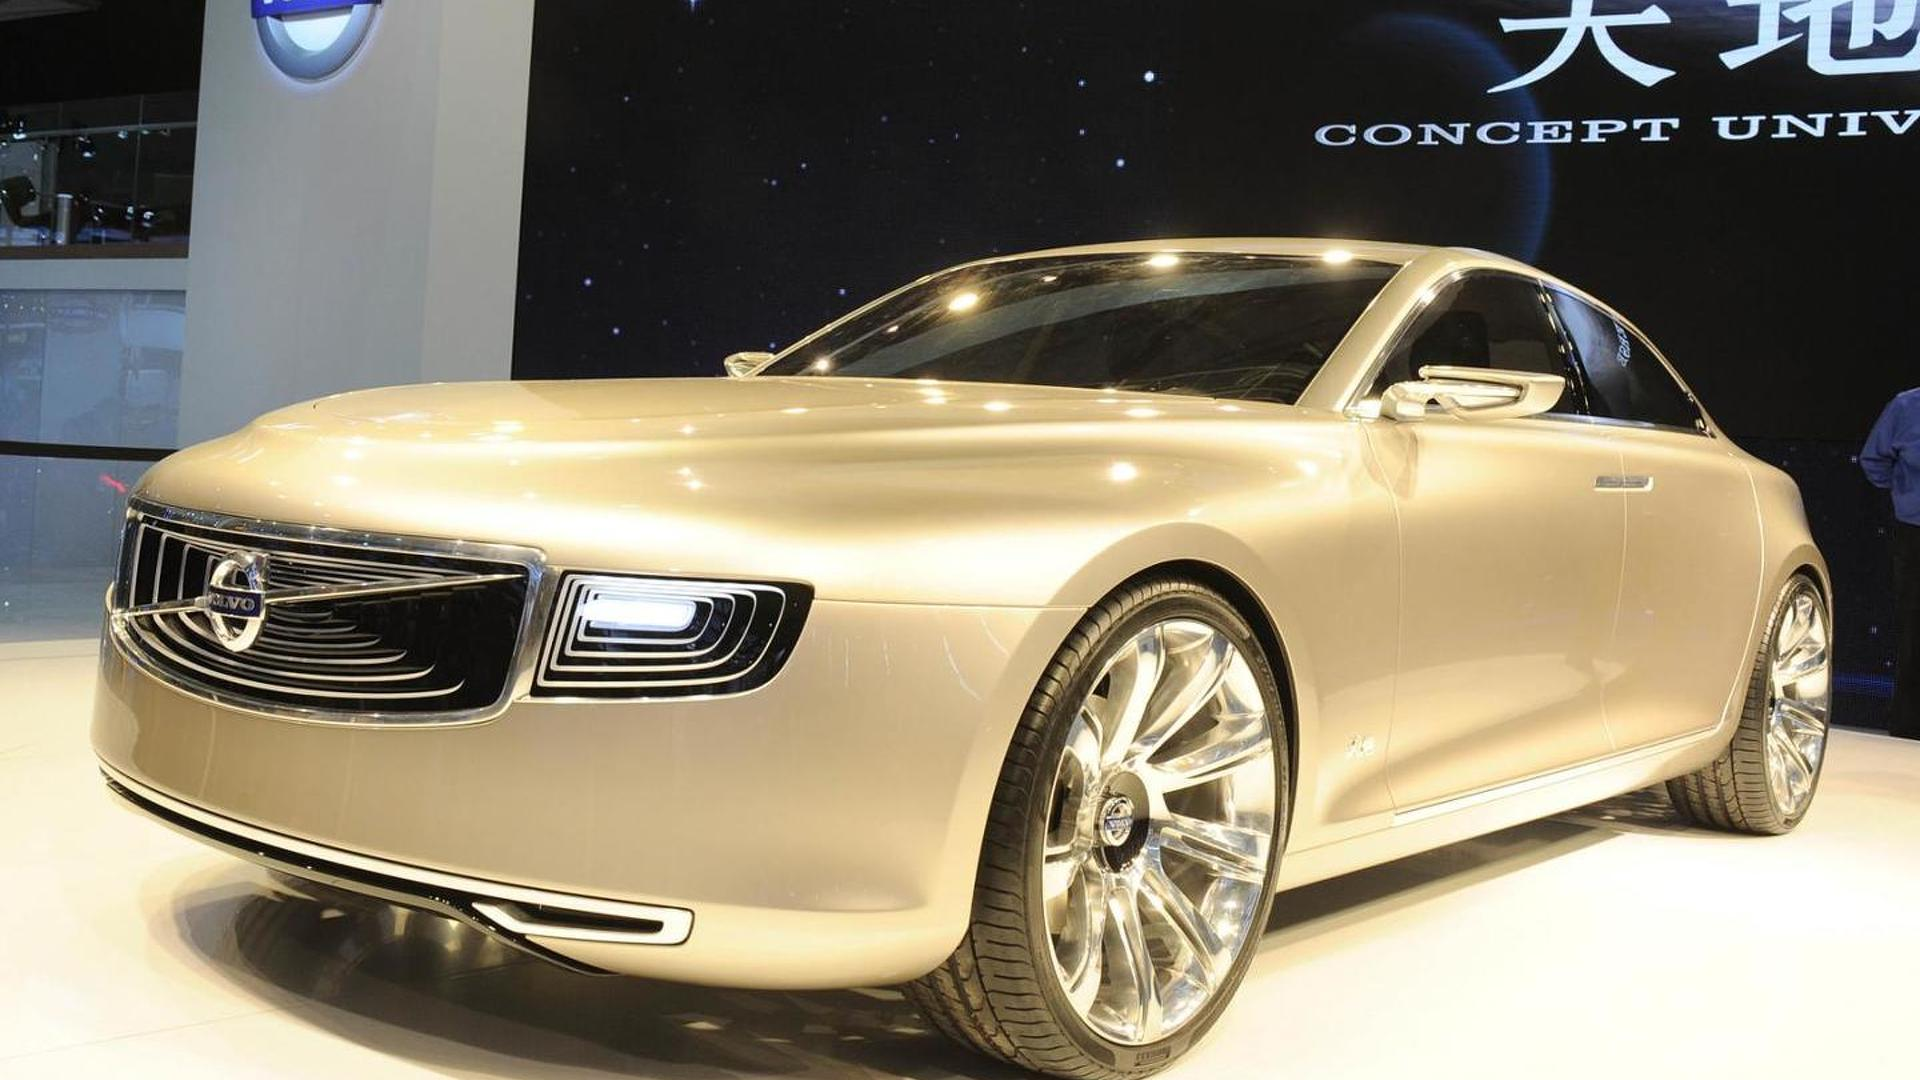 Volvo S90 Flagship Sedan Extensive Details Emerge Will Be Styled After Concept Universe